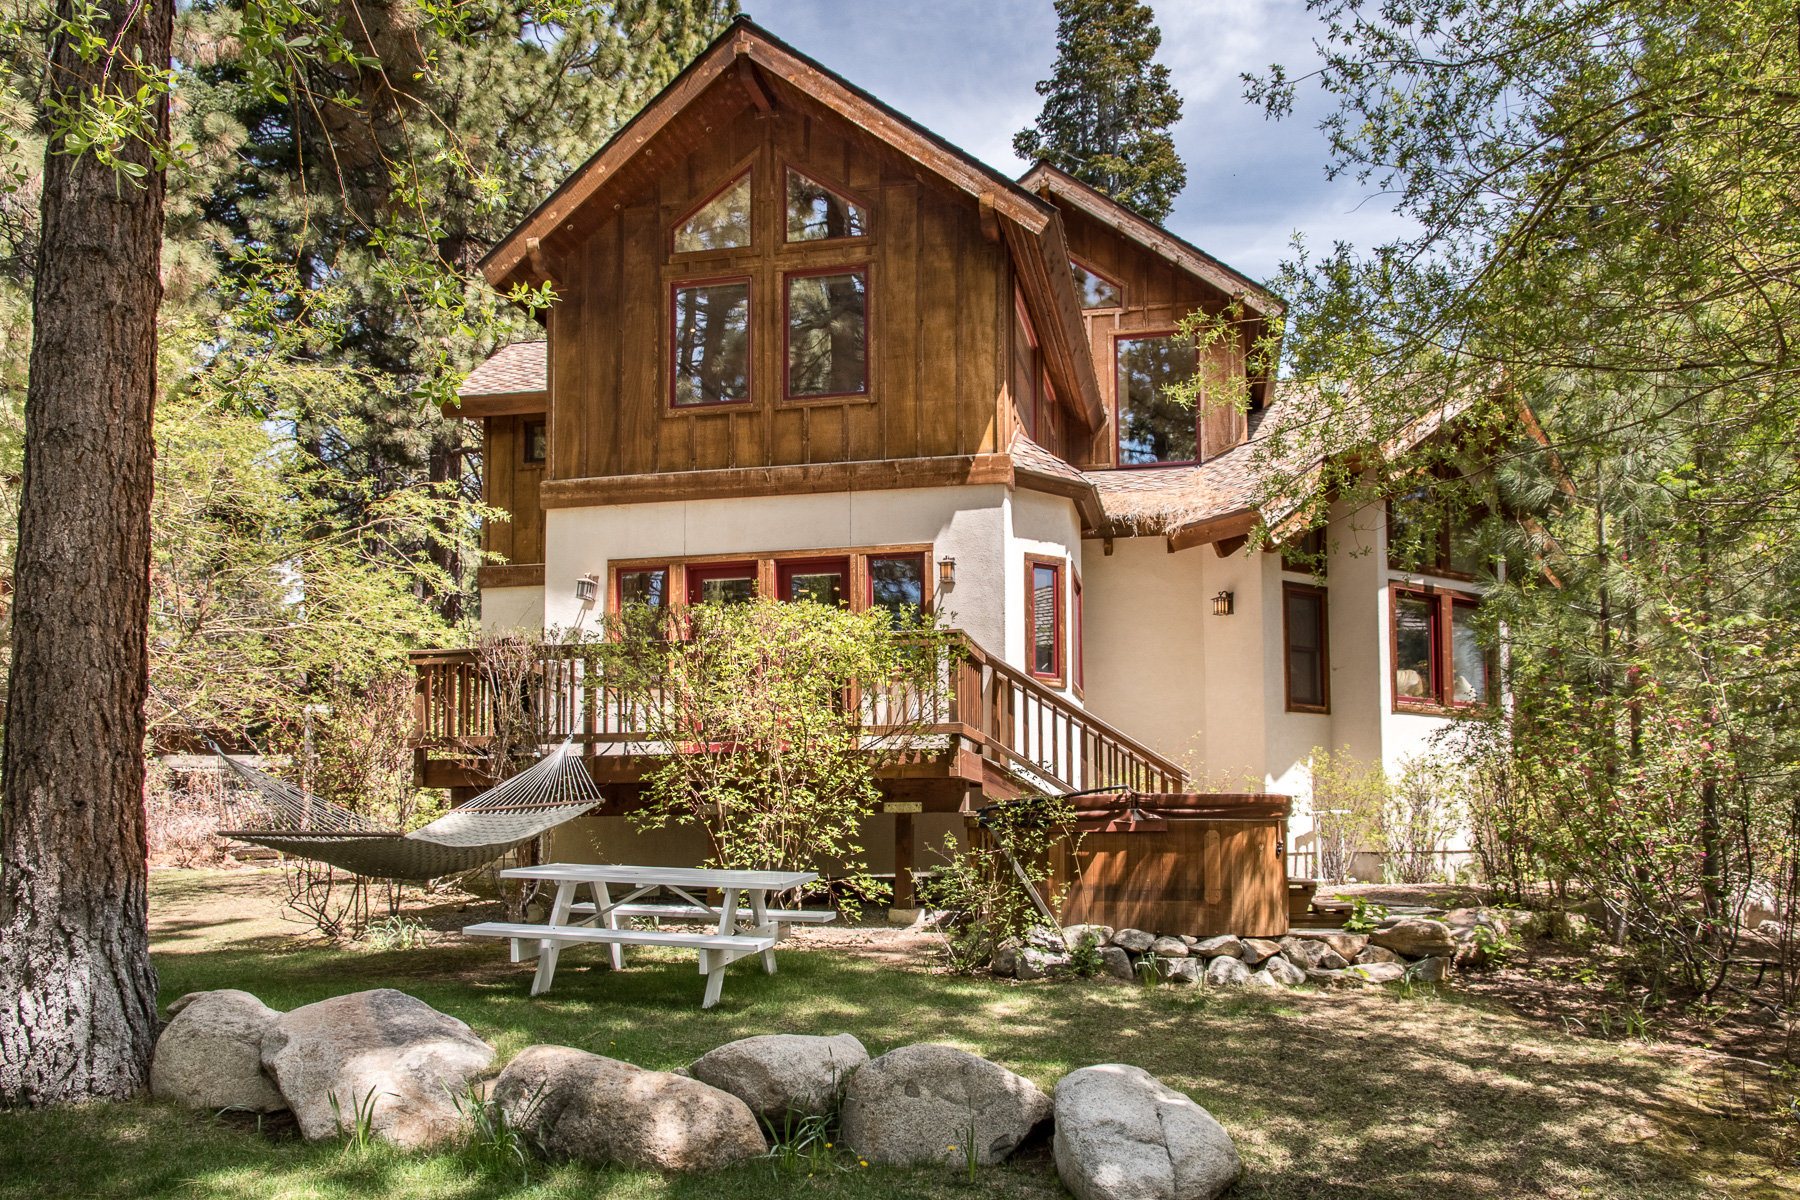 tahoe this at album perfect property south for sub lake cabins in vacation the cfm cabin could rentals be your silverwood classic photo